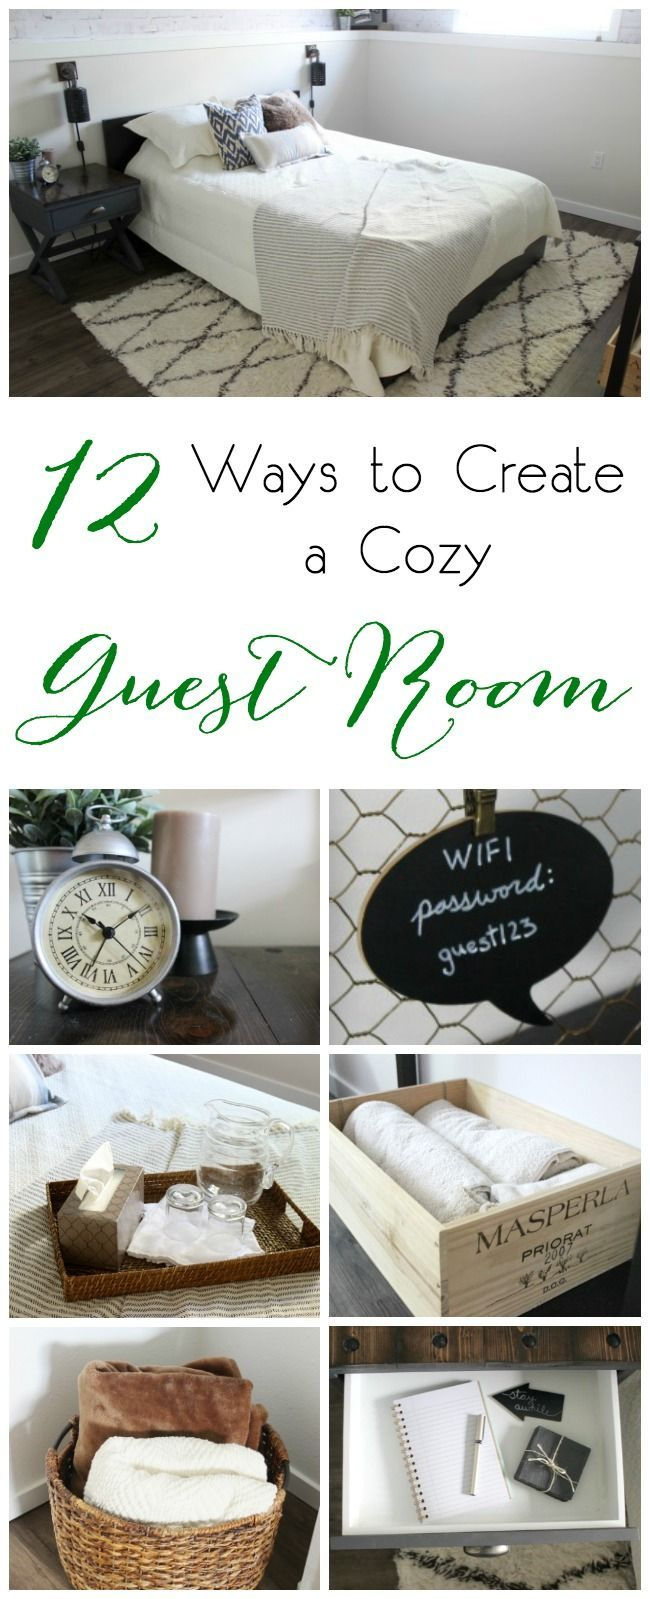 12 Ways to Create a Cozy Guest Room 12 great tips for taking your guest space to the next level. Learn how to create a welcoming, cozy guest room just by adding a few special items! #minimalisthomedecor